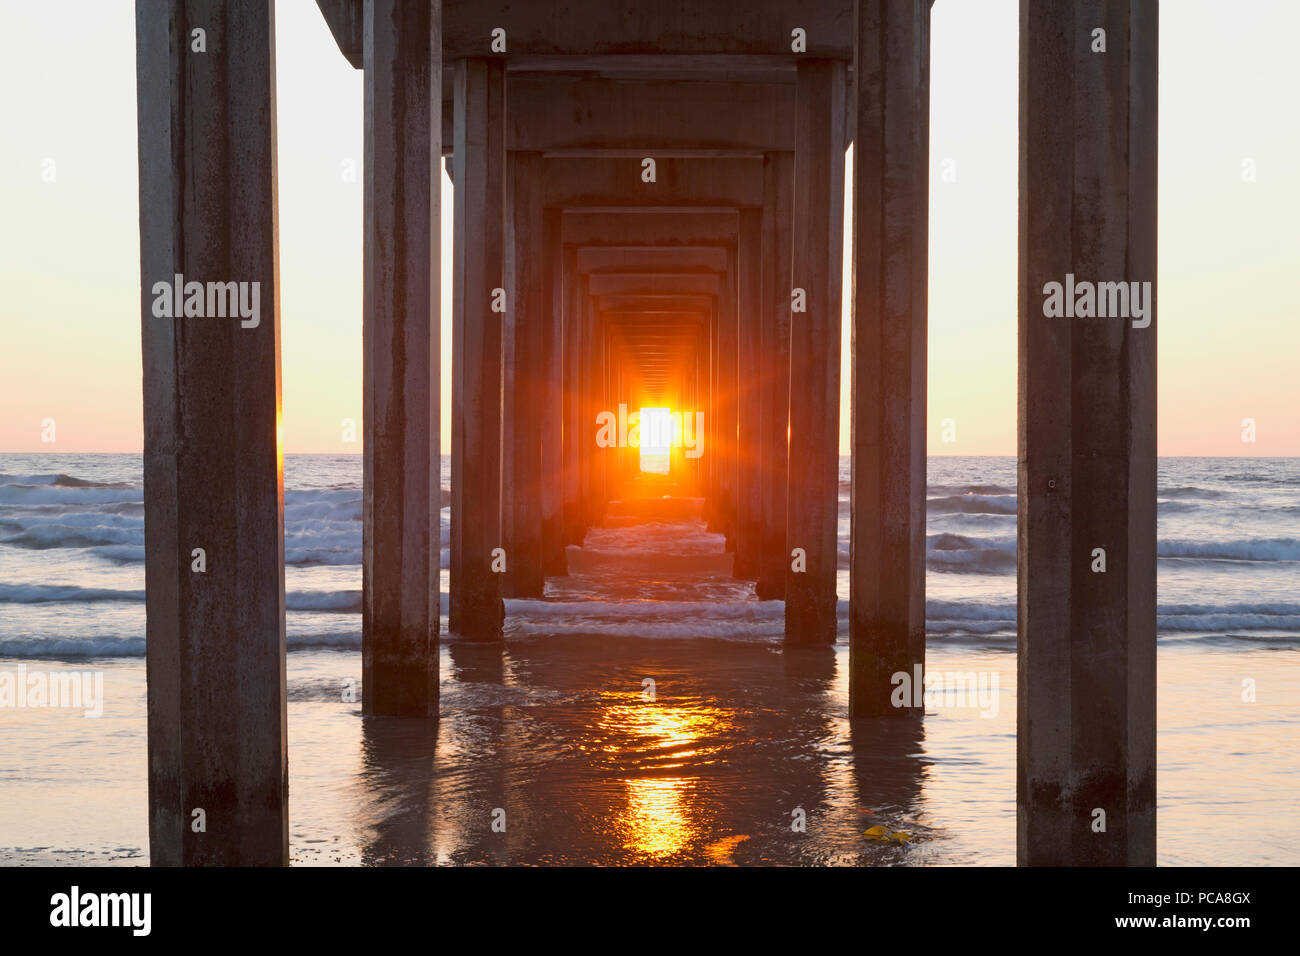 ScrippsHenge, Scripps Institute of Oceanography Pier with Sunset lined up perfectly (Happens twice per year) - Stock Image